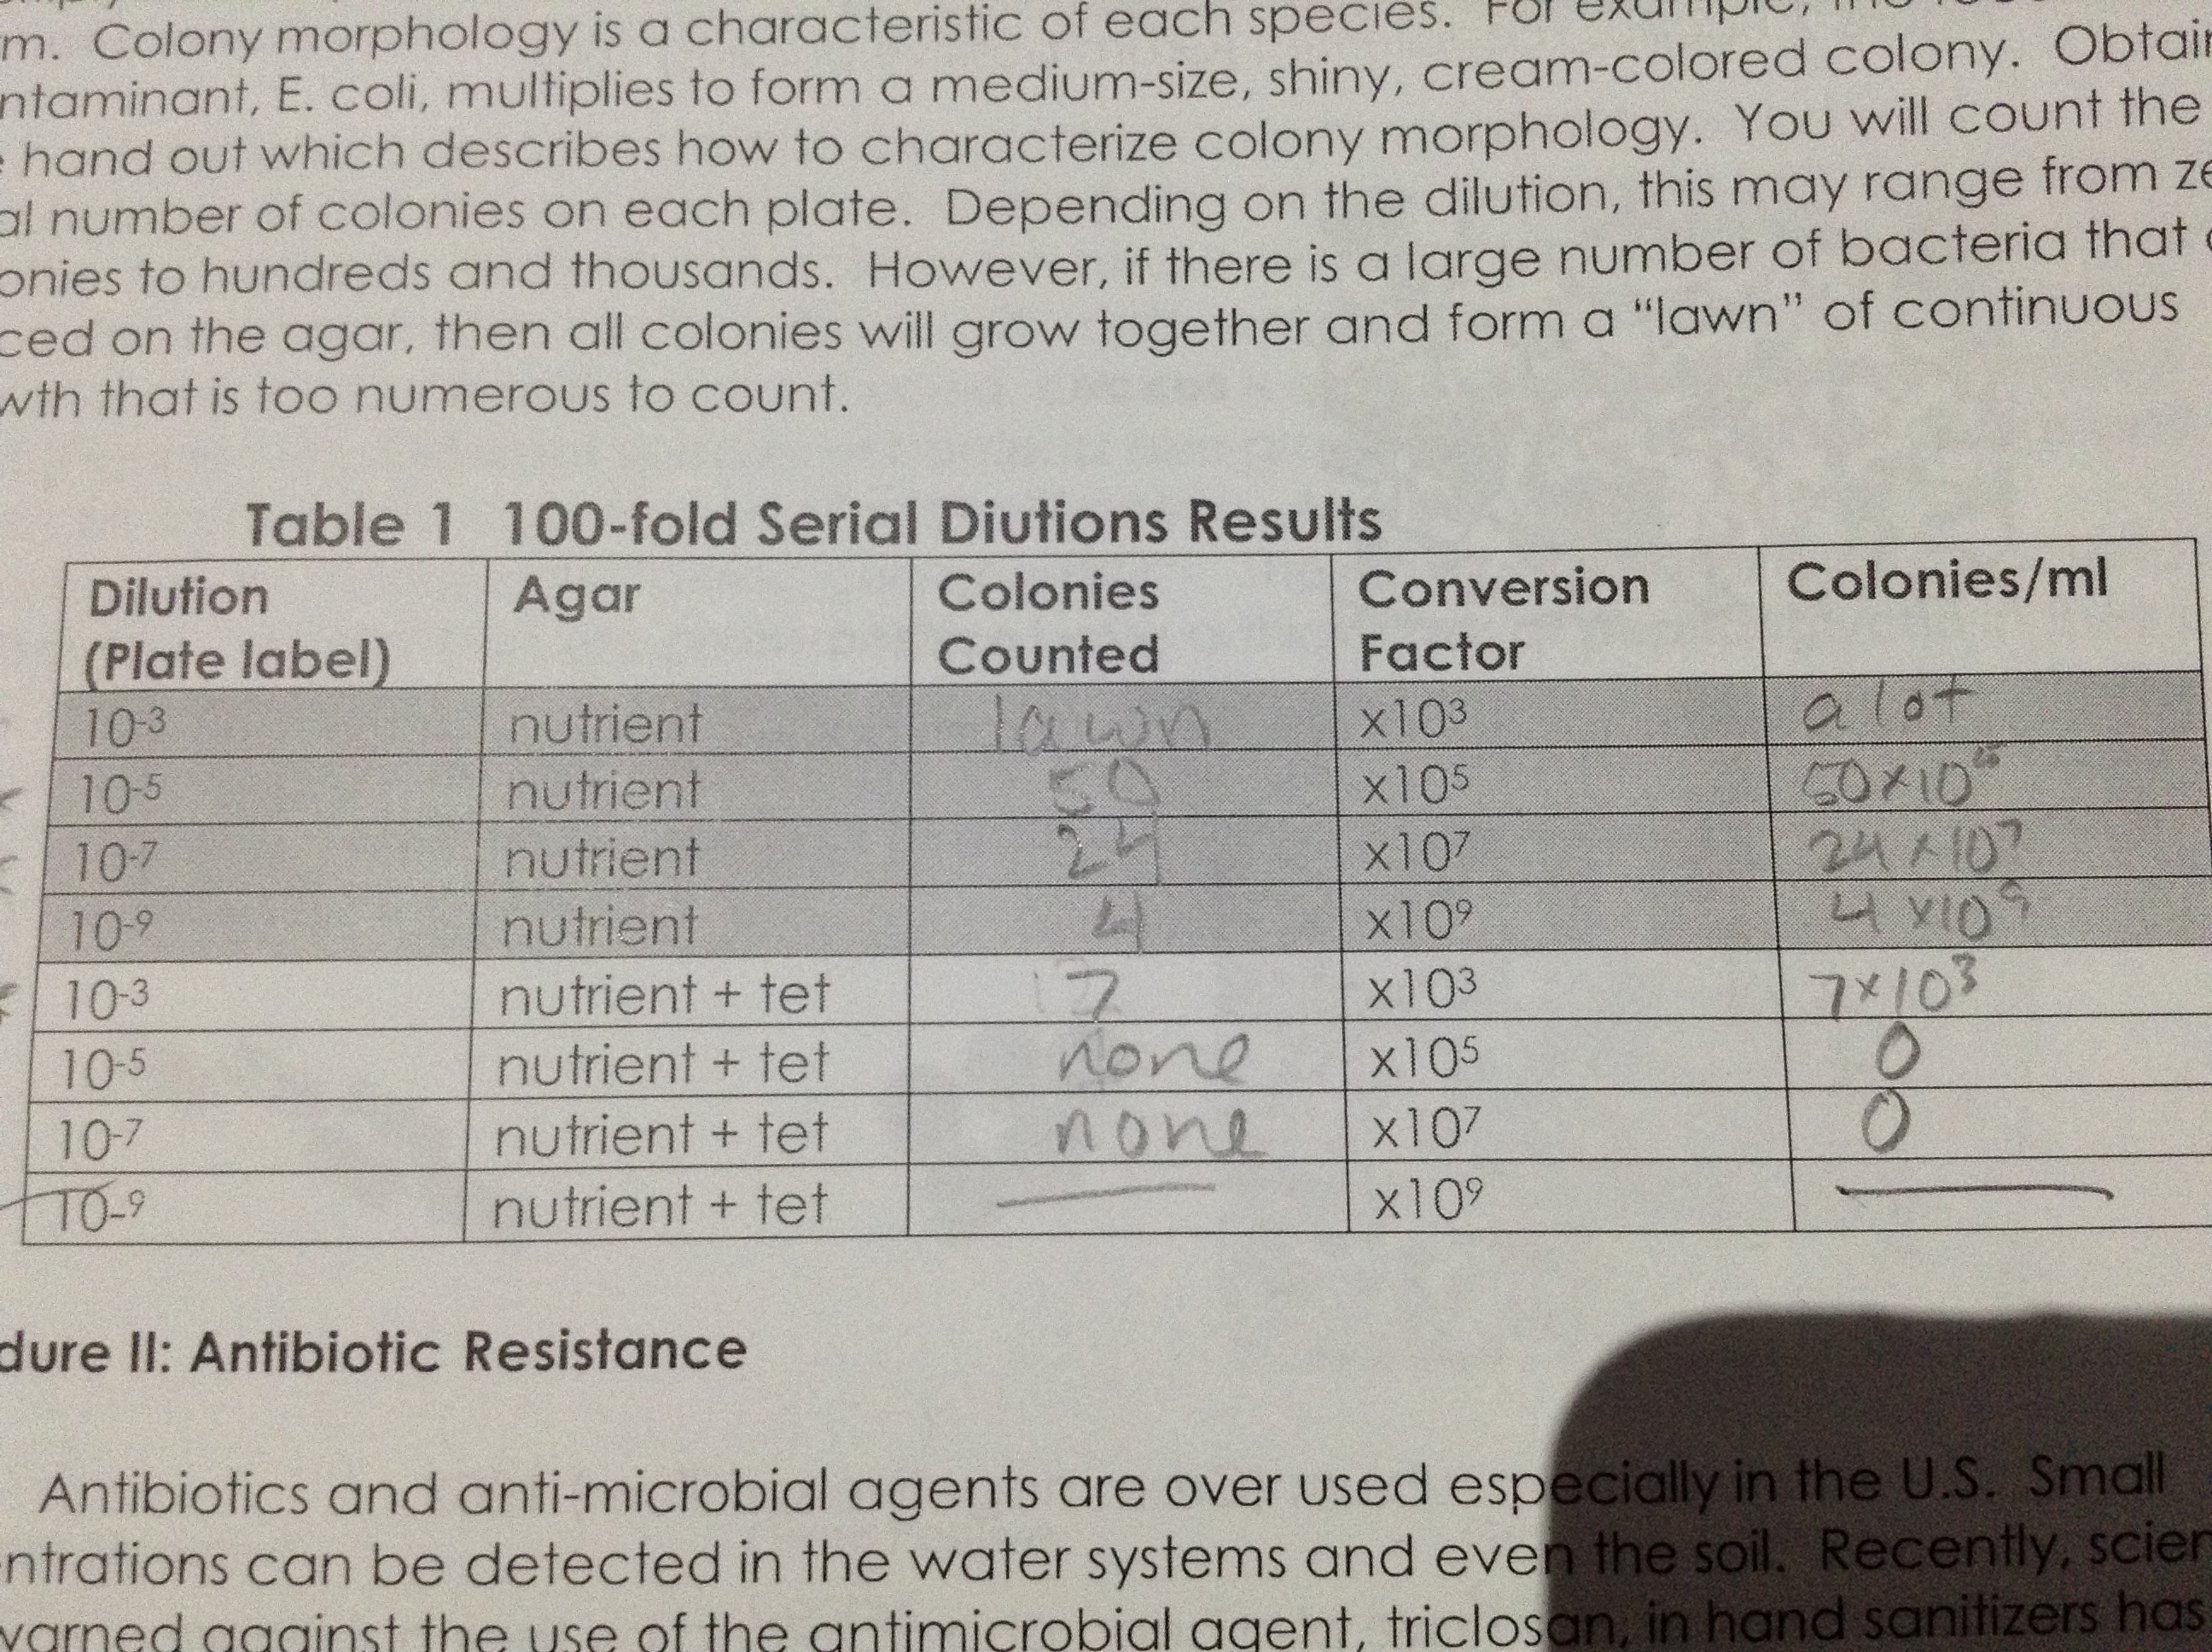 Serial Dilution Results 001.jpg